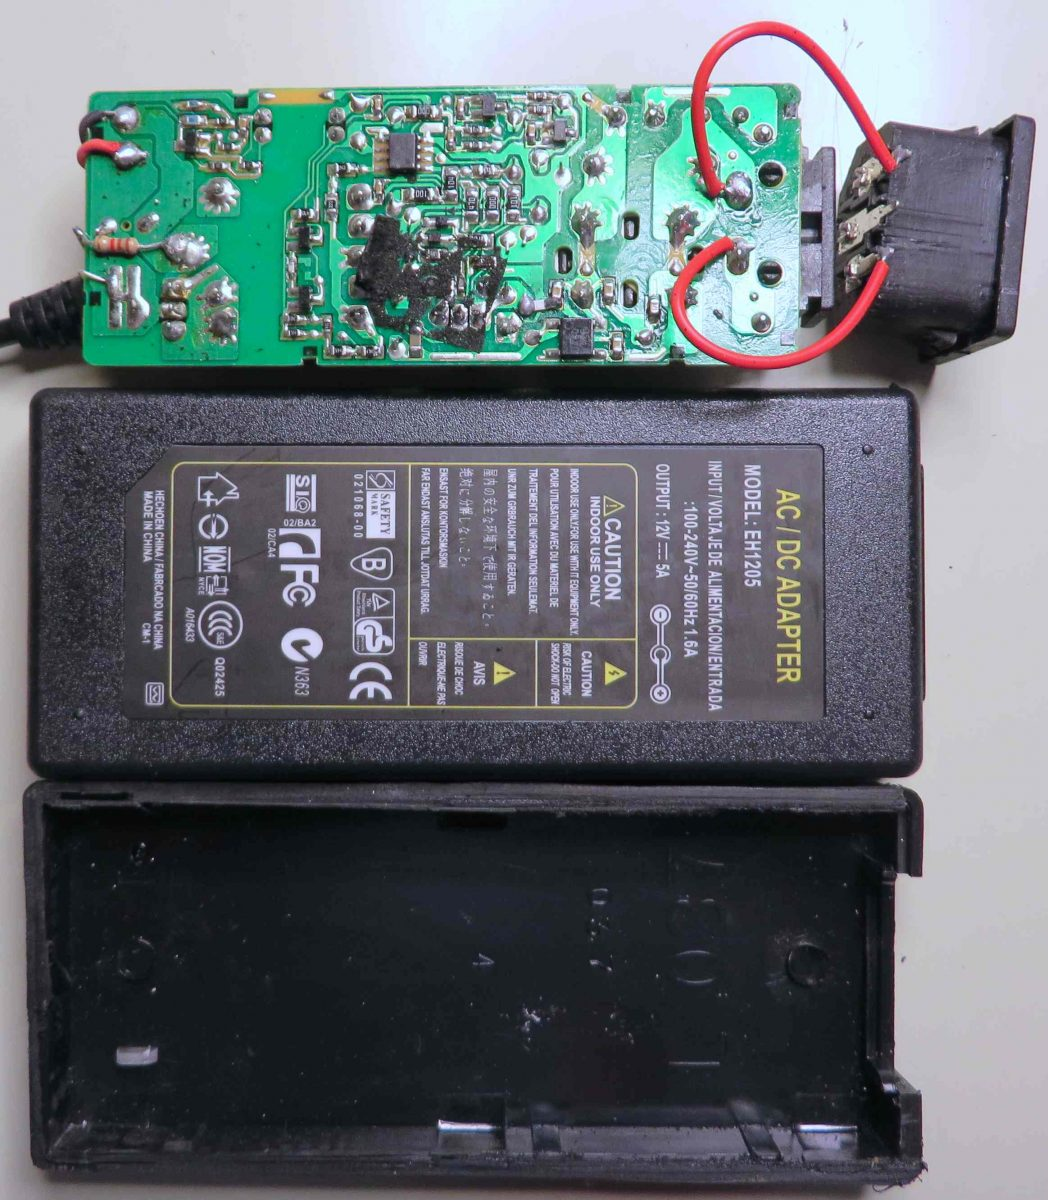 Teardown12V AC adapters – The Horror